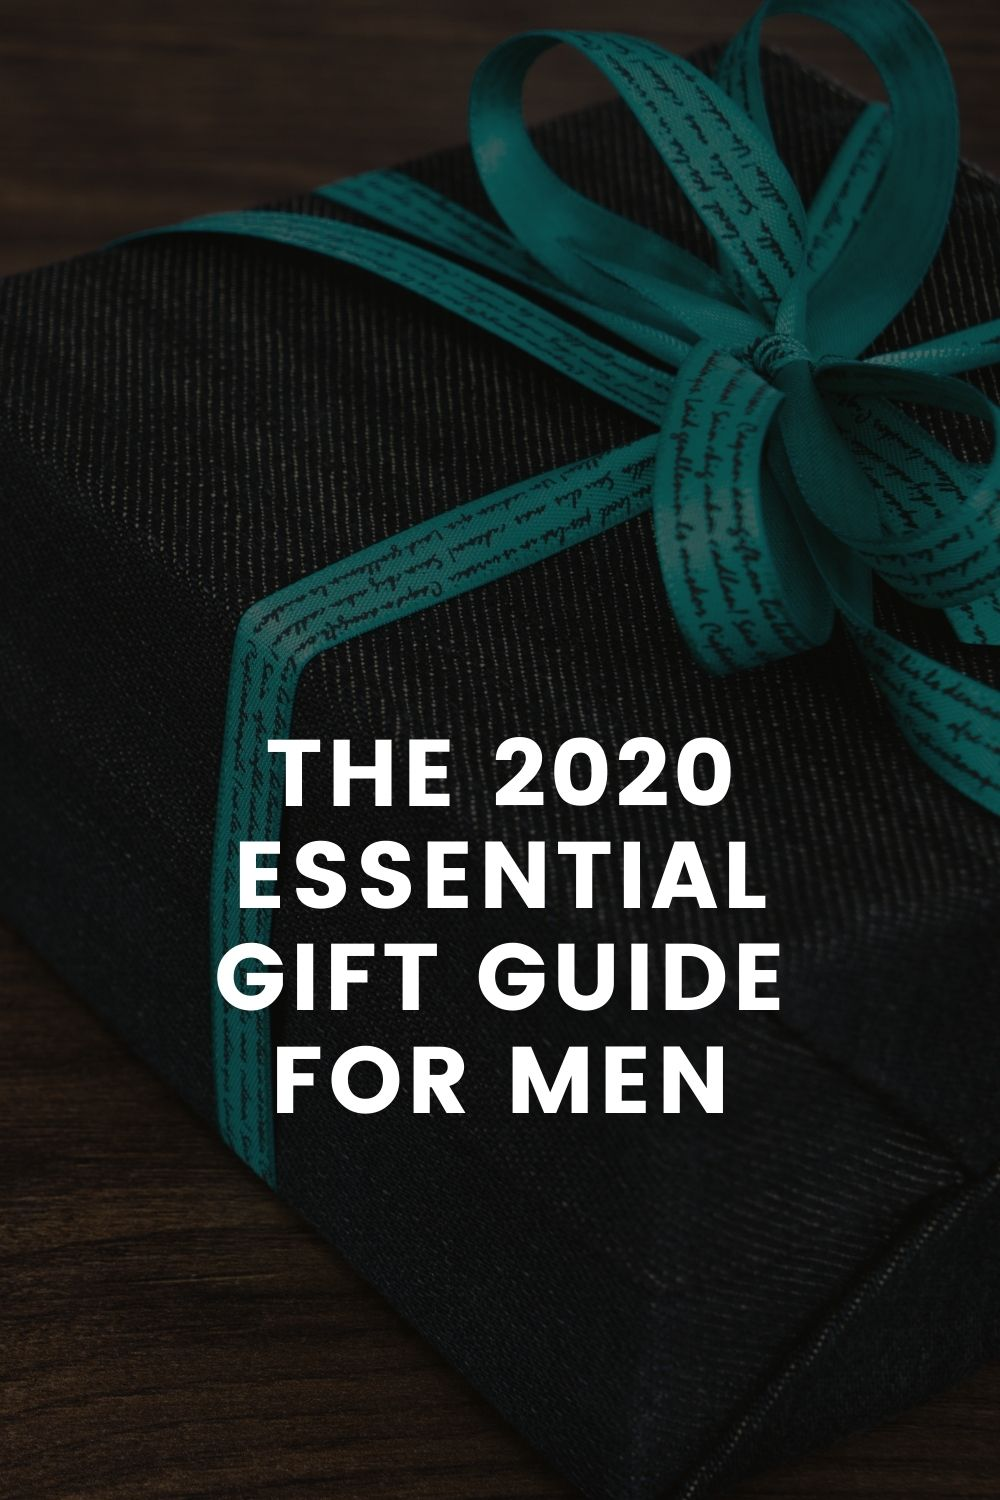 The 2020 Essential Gift Guide for Men